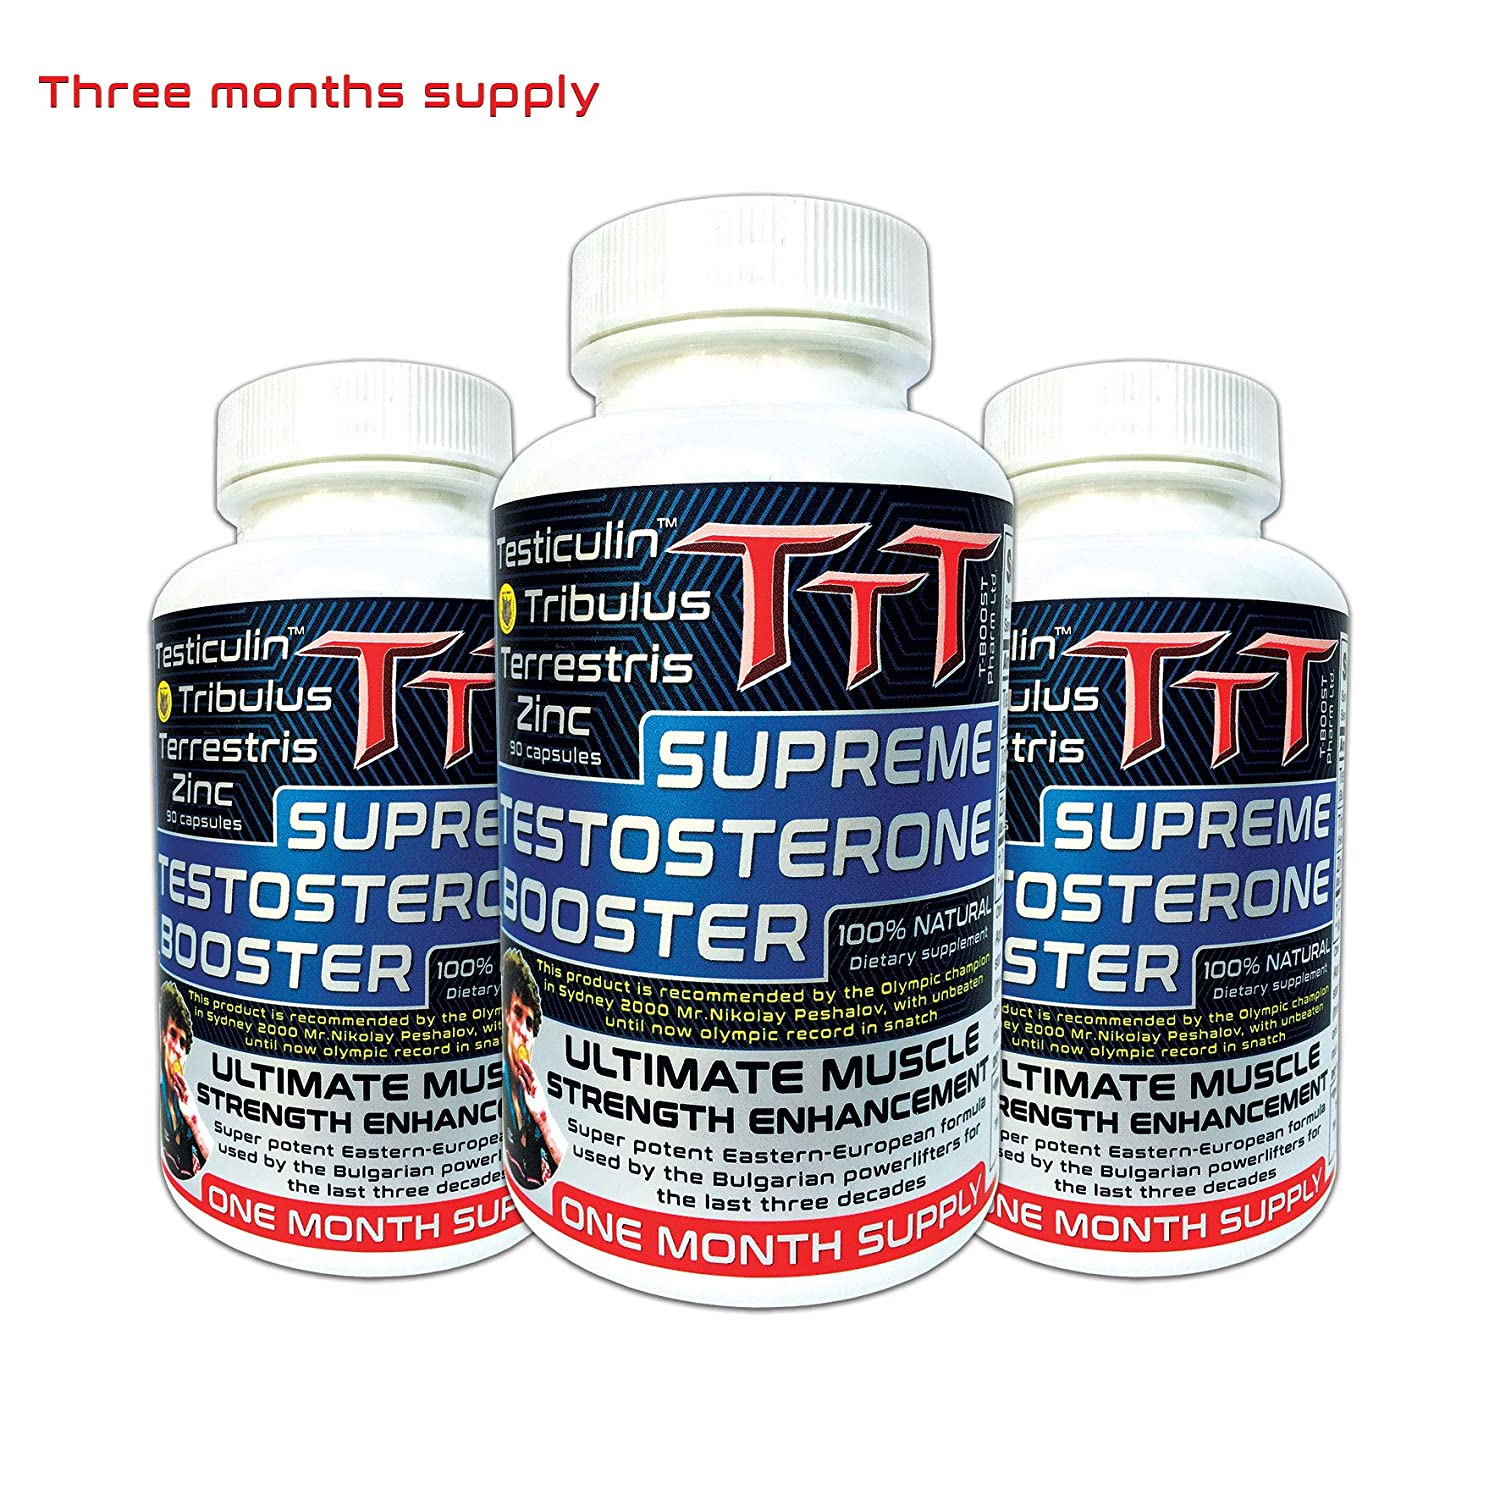 3x1 TTT- The Best Alternative Of The Anabolic Steroids  Supreme  Testosterone Booster  Contains Unique